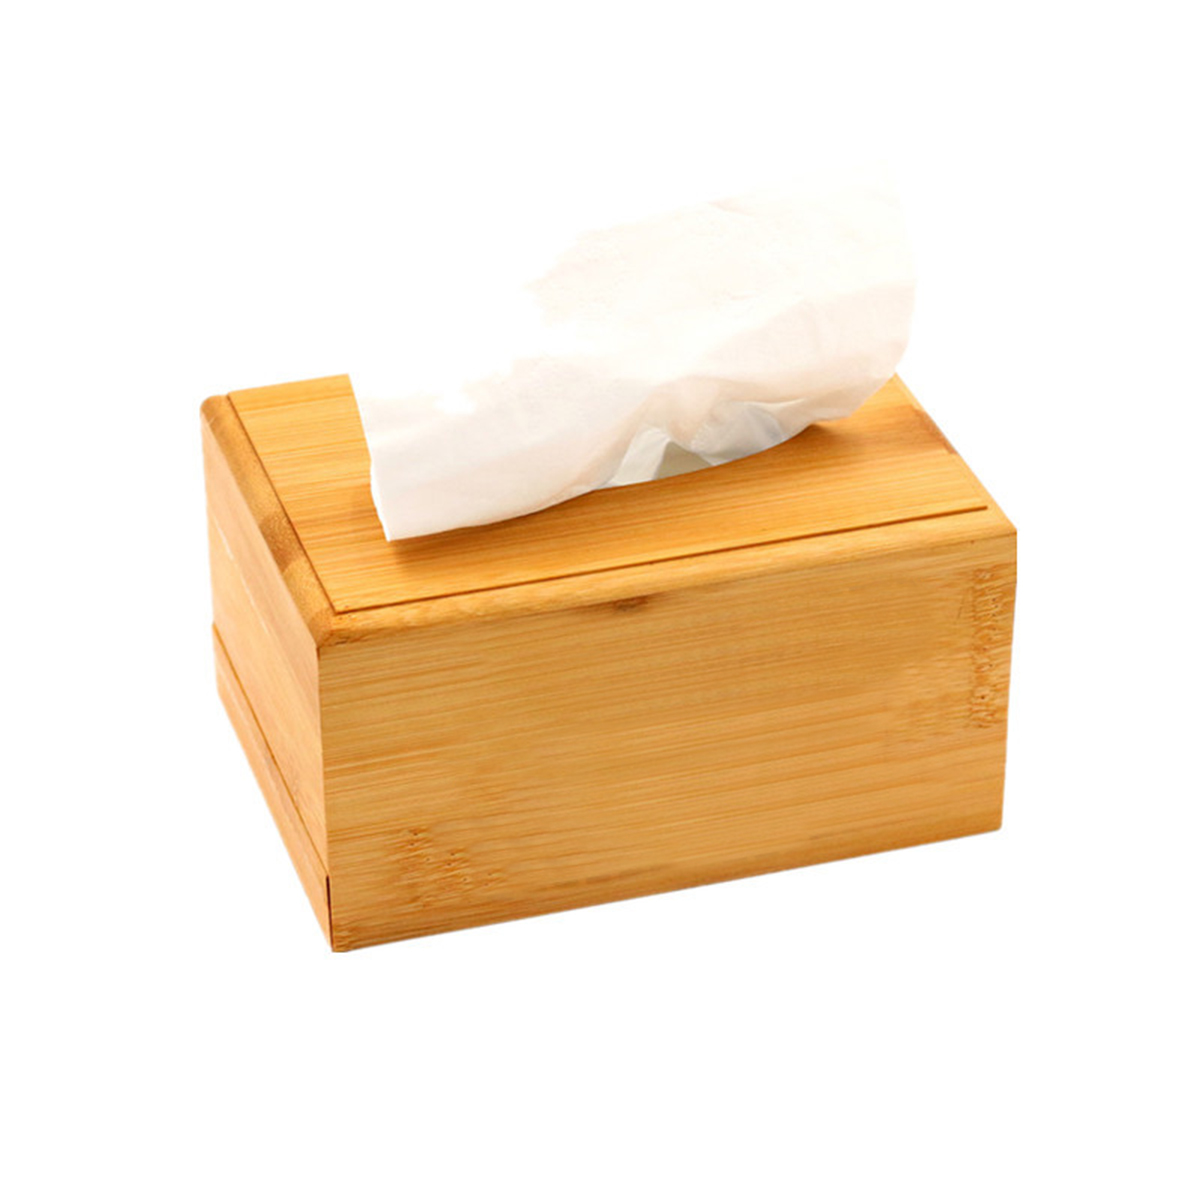 Creative Plain Wooden Tissue Box Cover Wood Holder Car Home Paper Storage